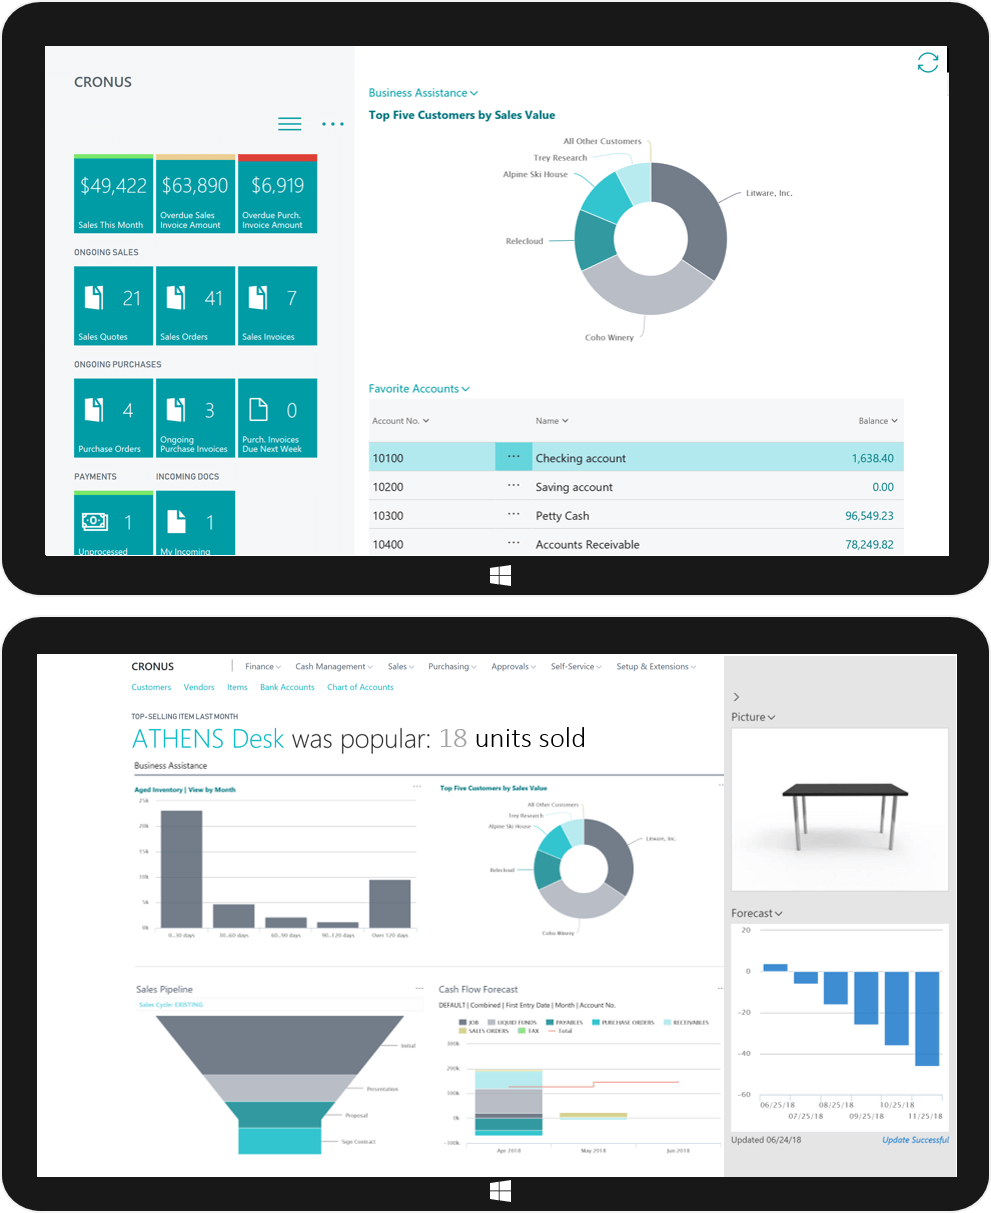 Dynamics 365 Business Central lets you get up and running quickly. Right from the start, handle the most common tasks—quotes, orders, invoicing, purchasing, cash management, and reporting. If you're currently using QuickBooks, transferring your company's financial data into Dynamics 365 Business Central is quick and painless. Intuitive migration tools let you import all the data you need for maximum business continuity. There's no need to slow down and switching to a new solution doesn't have to impact your day-to-day workflow. By using familiar Office tools your people already know, everyone gets up to speed quickly and without extensive training. Applications like Outlook, Word, and Excel provide the comprehensive and reassuring experience that gives employees confidence.  It's built in the cloud, so it's easy to set up, manage and scale. Learn more about Dynamics 365 Business Central in Malaysia and Singapore from Dynamics 365 experts